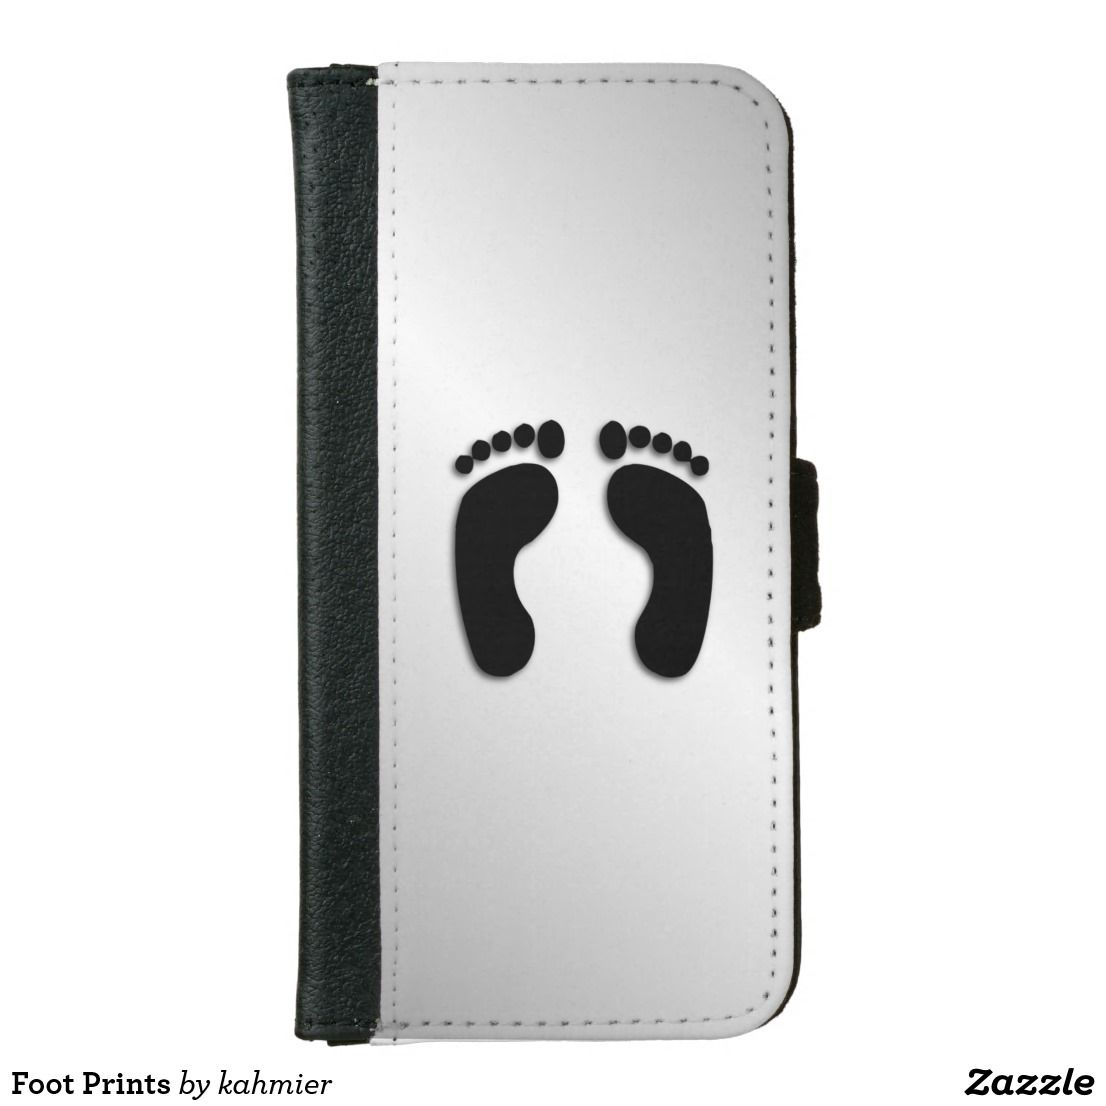 Foot Prints Wallet Phone Case For iPhone 6/6s